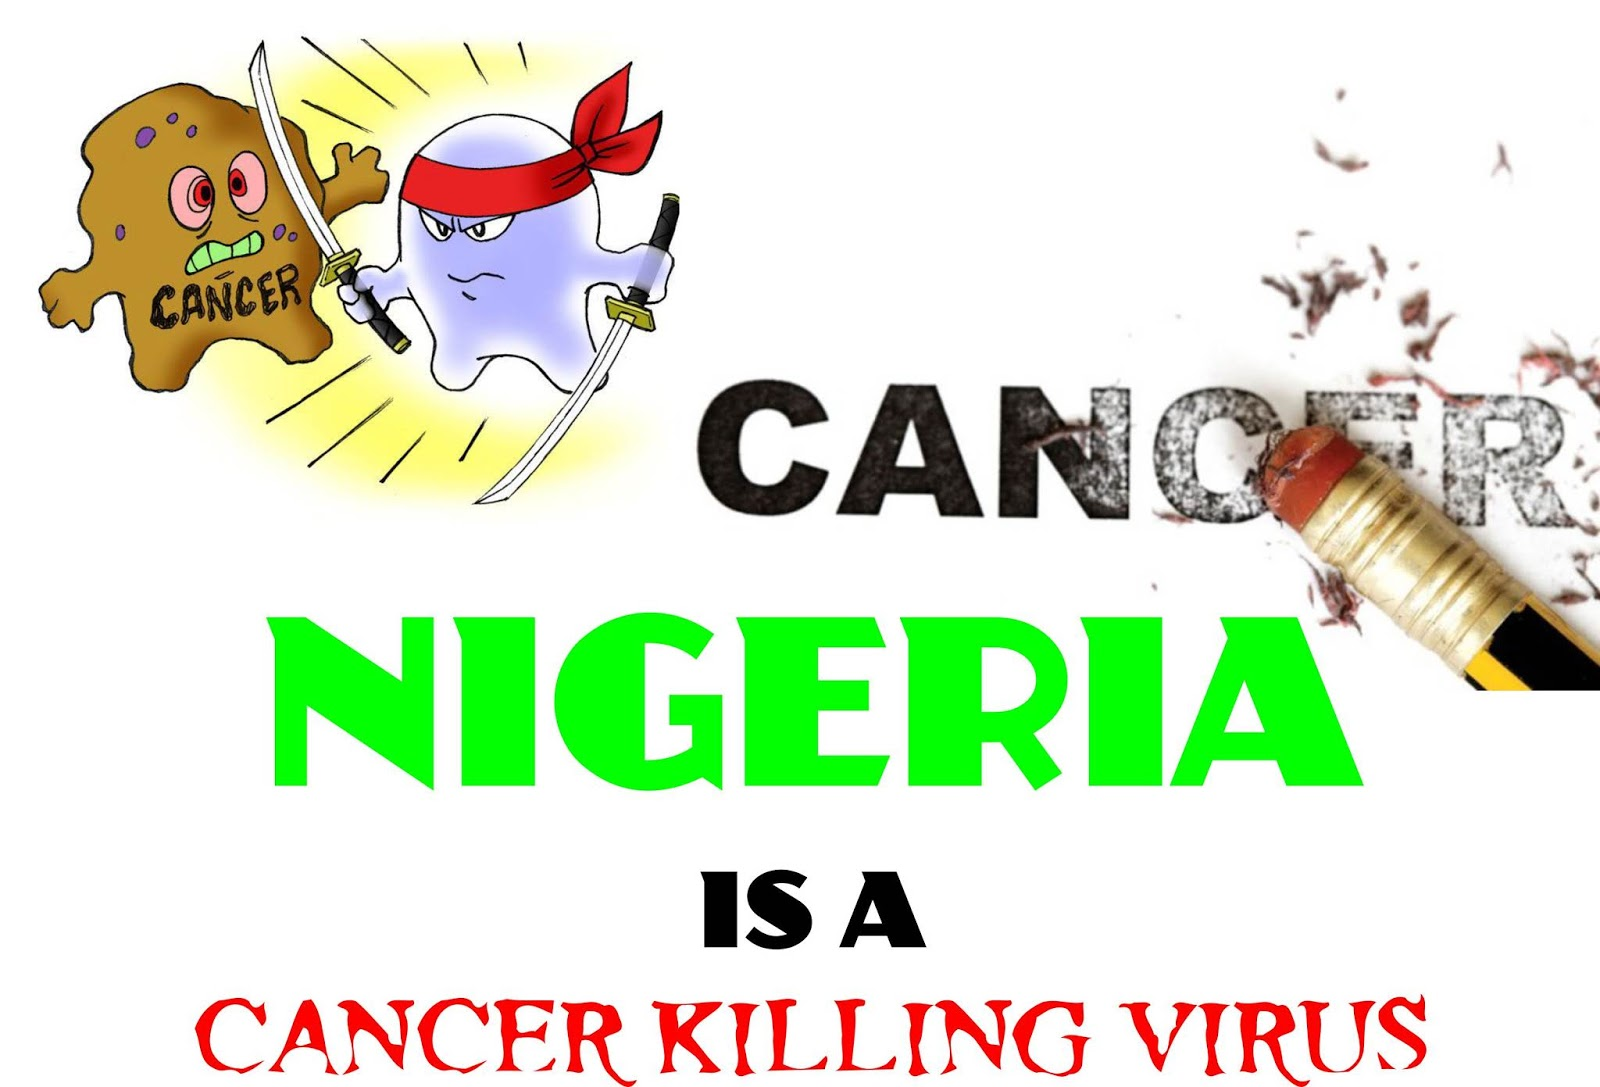 OPINION: NIGERIA IS A CANCER KILLING VIRUS - The Biafra